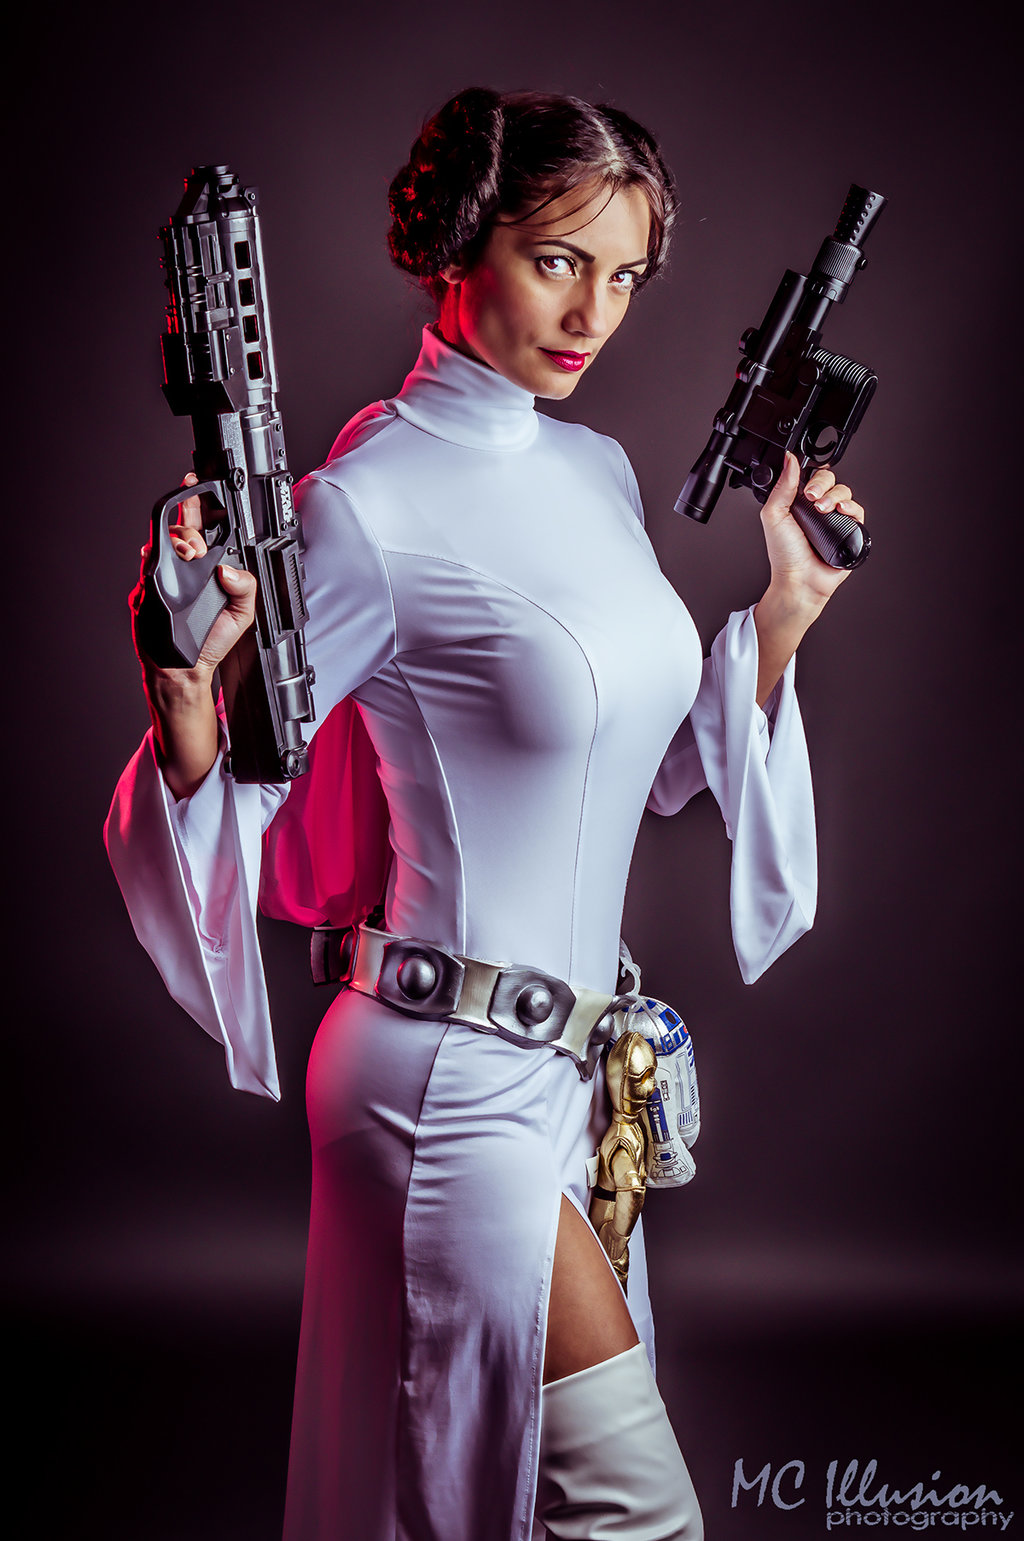 Ivy95  is Priness Leia — Photo by MC Illusion — Based on Art by RobDuenas